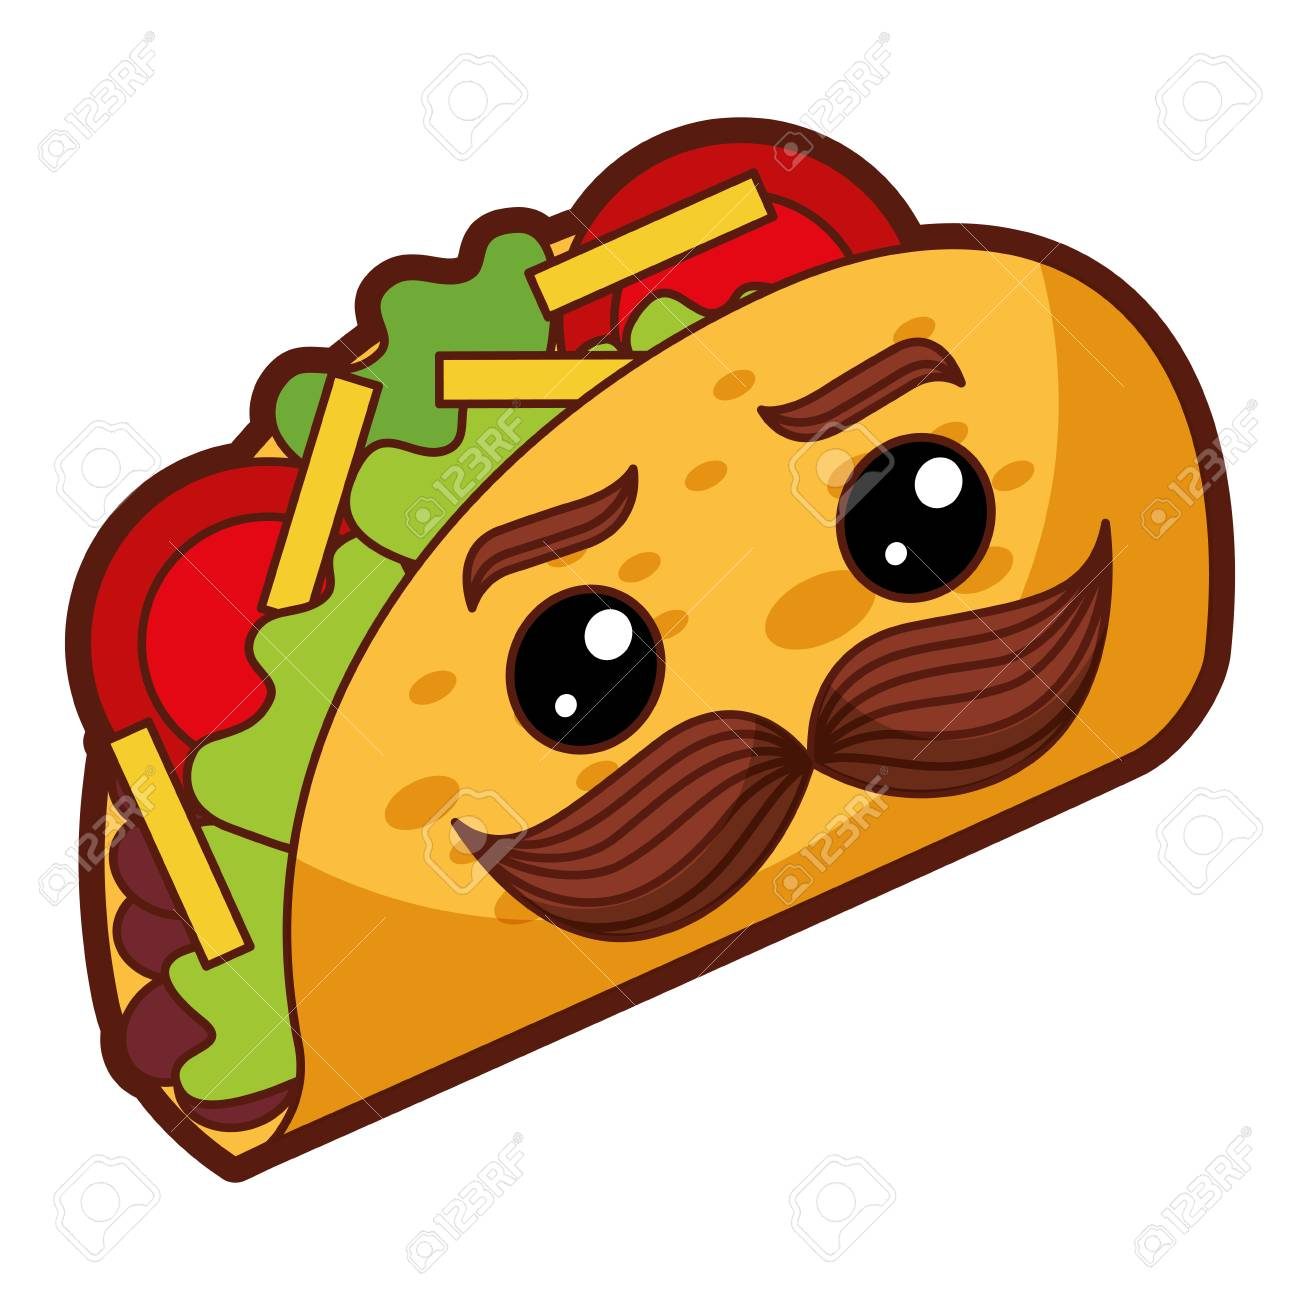 Delicious Mexican Tacos With Mustache Vector Illustration Design Royalty Free Cliparts Vectors And Stock Illustration Image 91905244